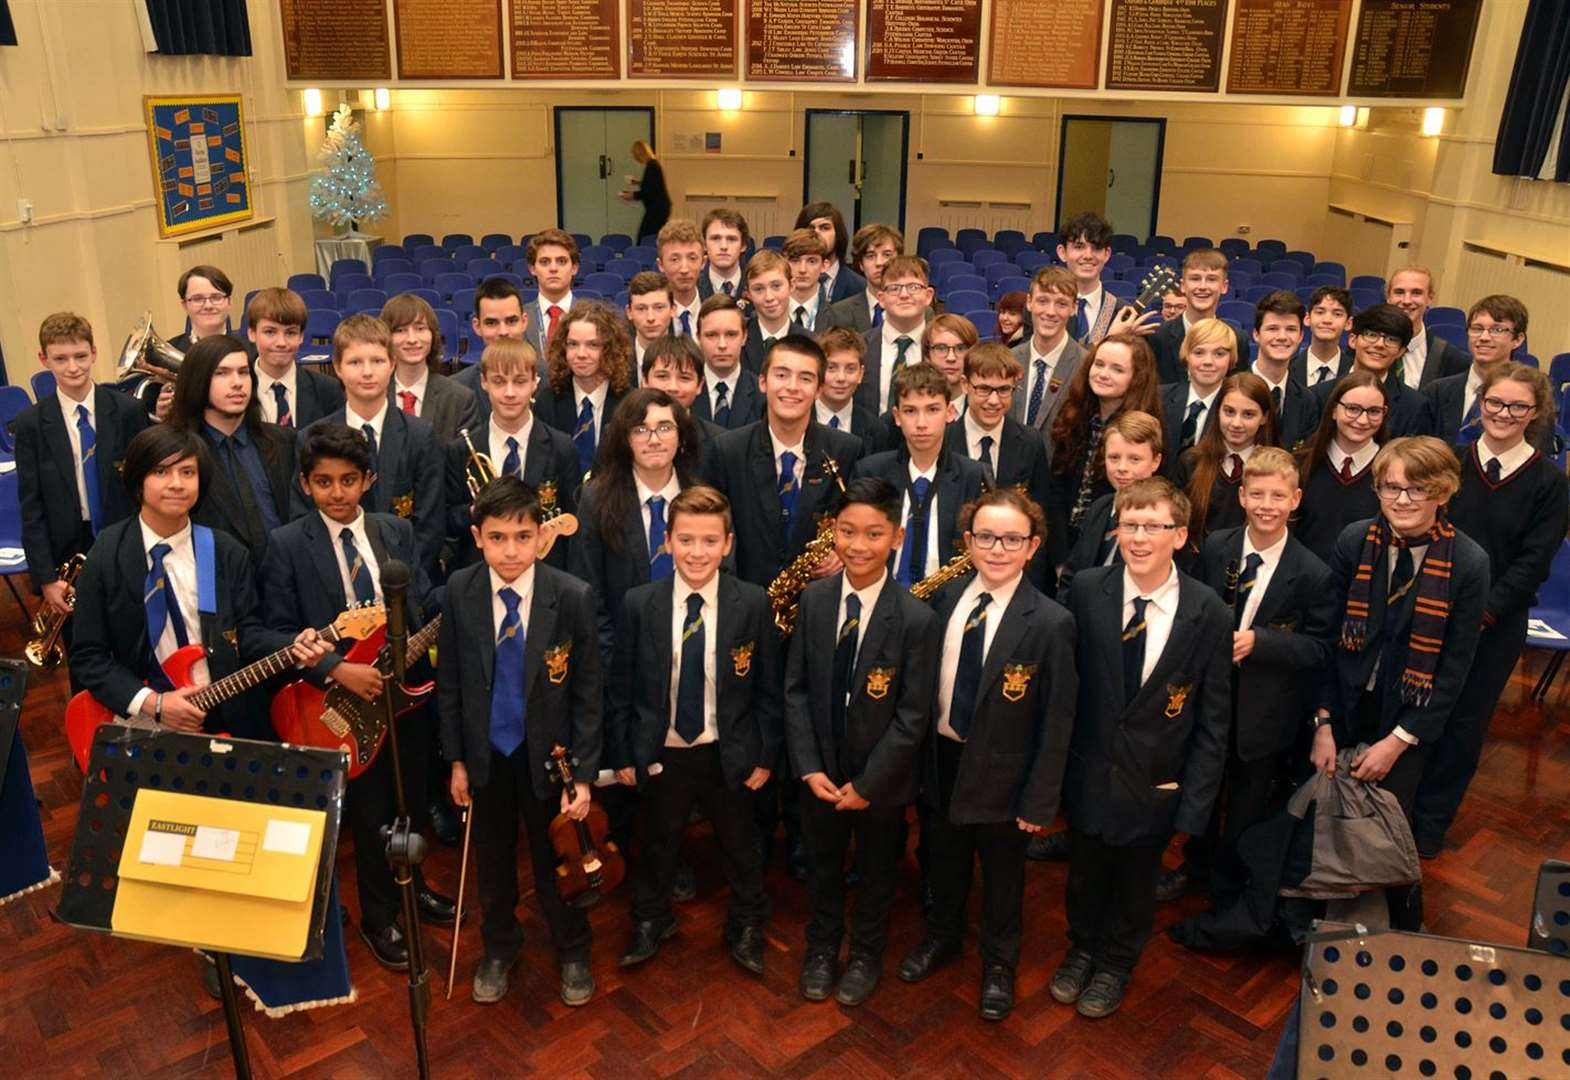 Rock meets the classic and carols in school concert